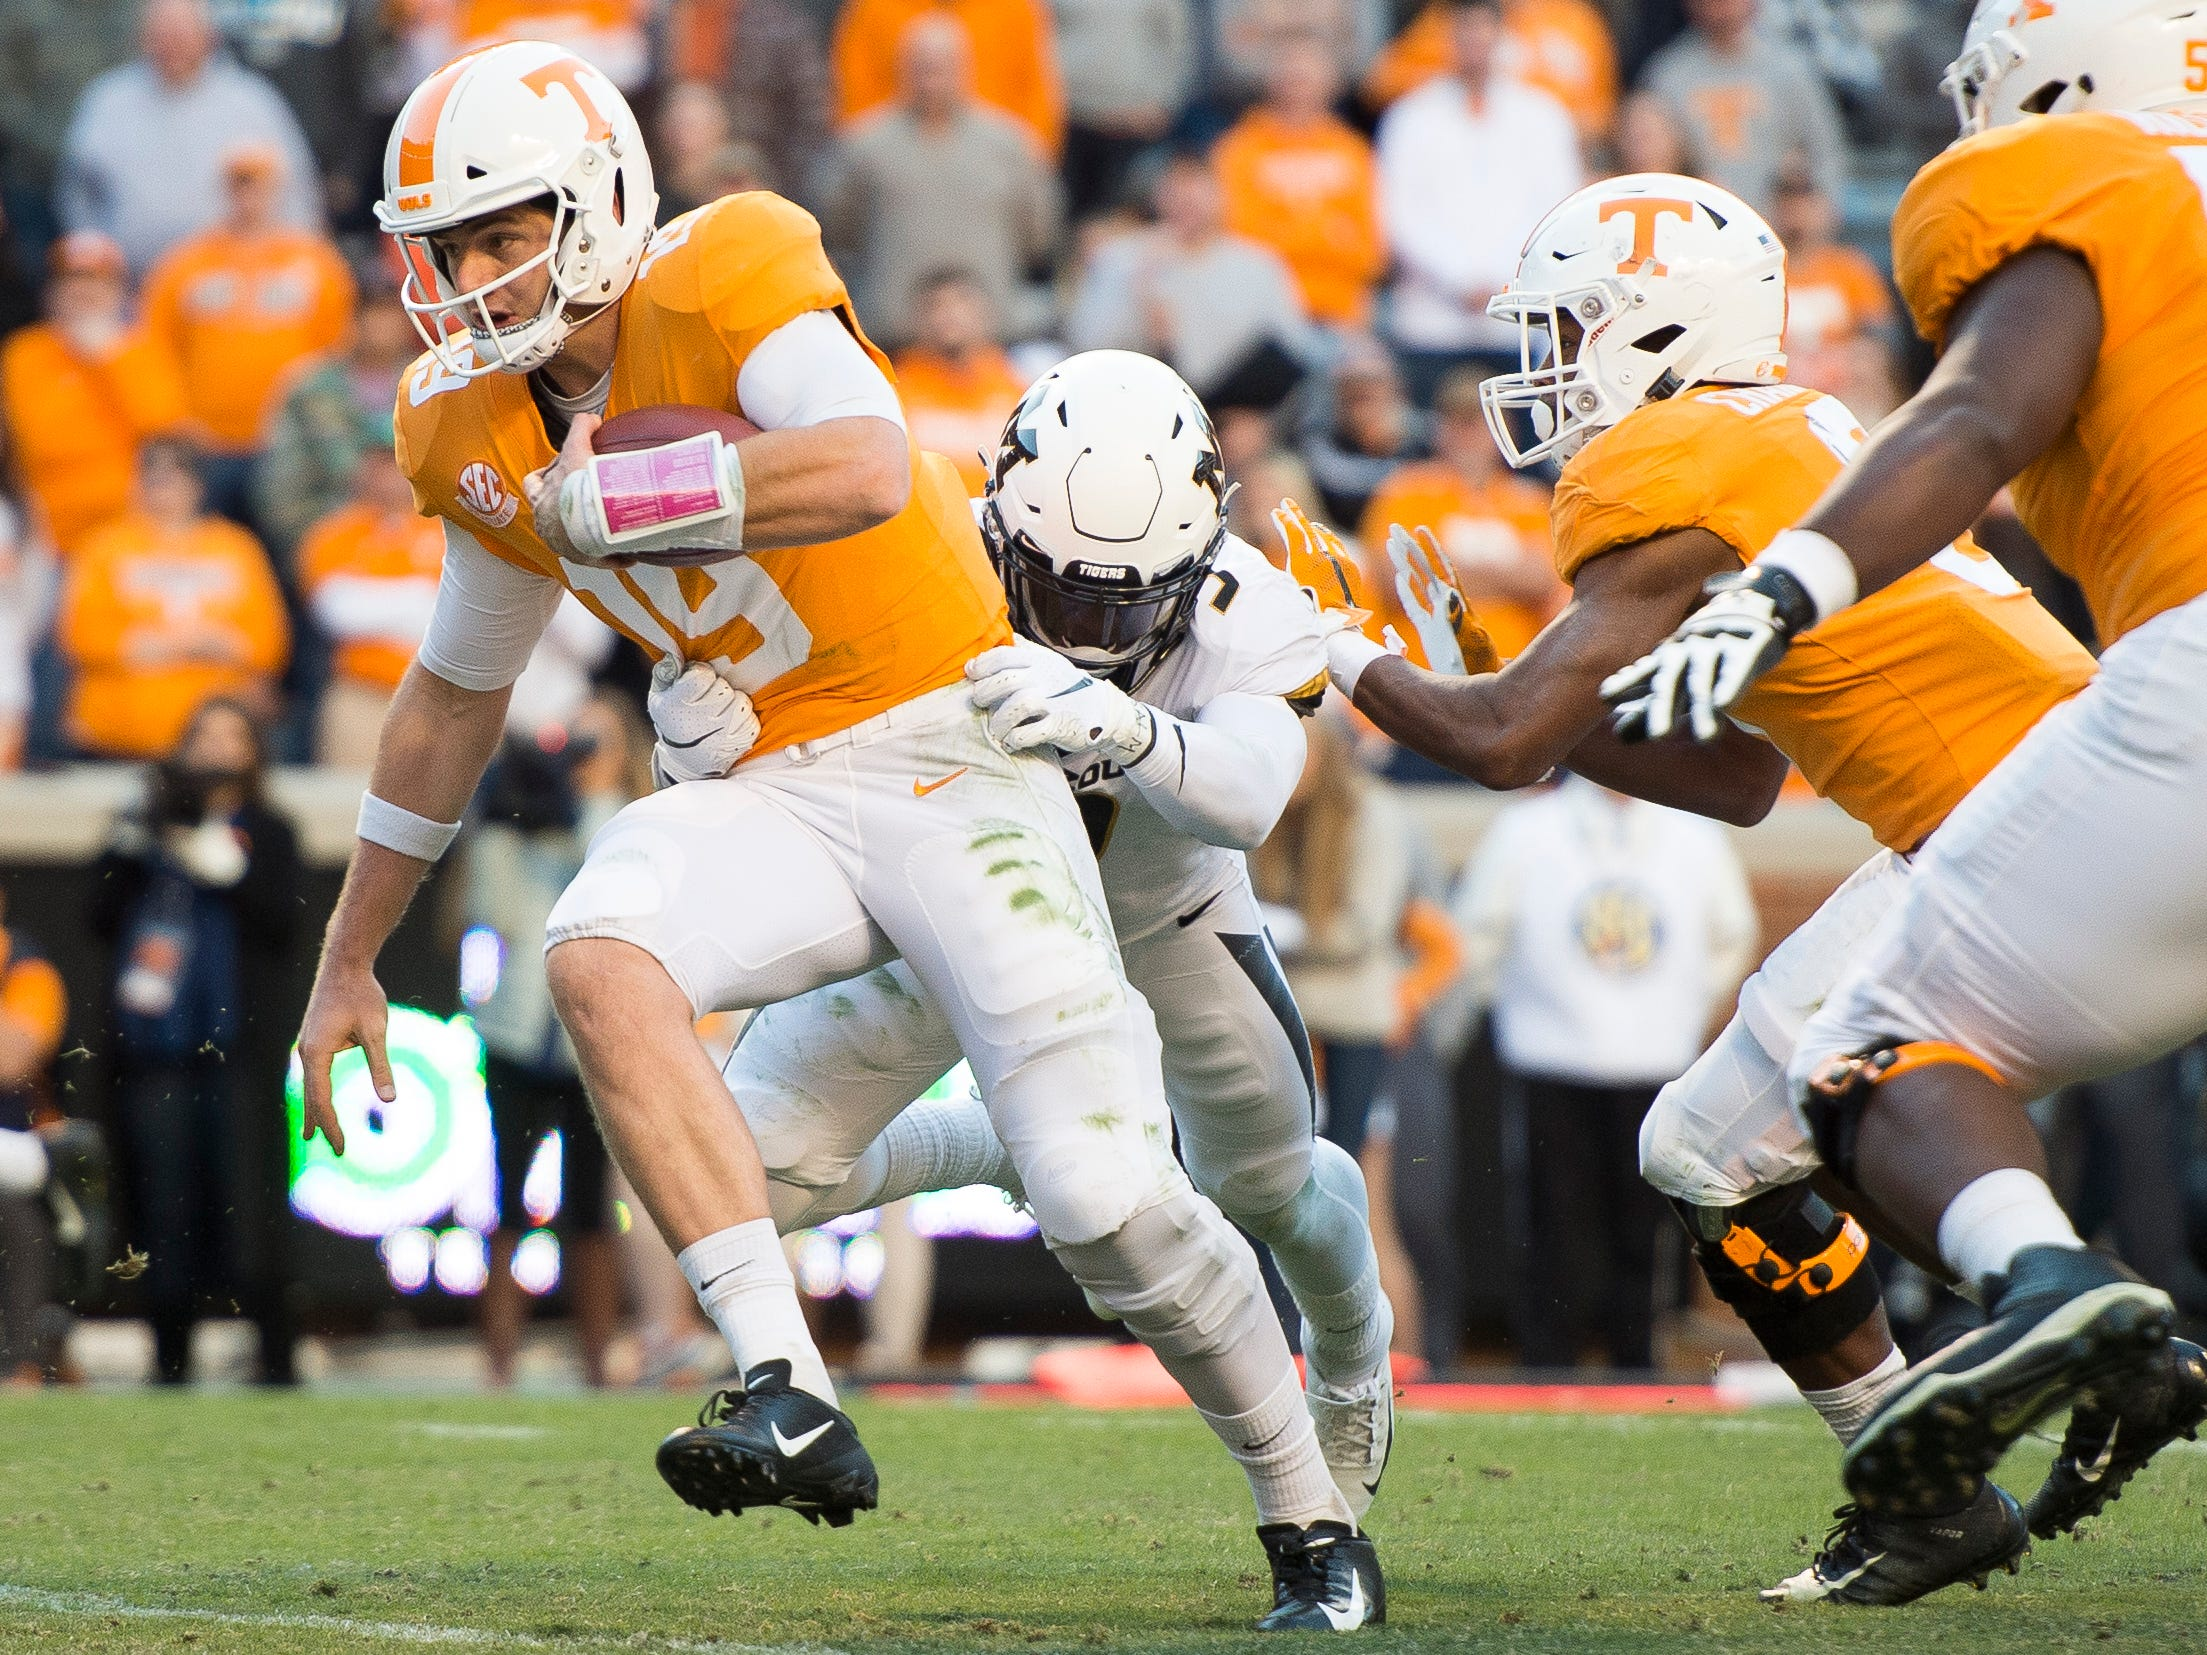 Tennessee quarterback Keller Chryst (19) fights for extra yardage during the Tennessee Volunteers game against the Missouri Tigers in Neyland Stadium on Saturday, November 17, 2018.